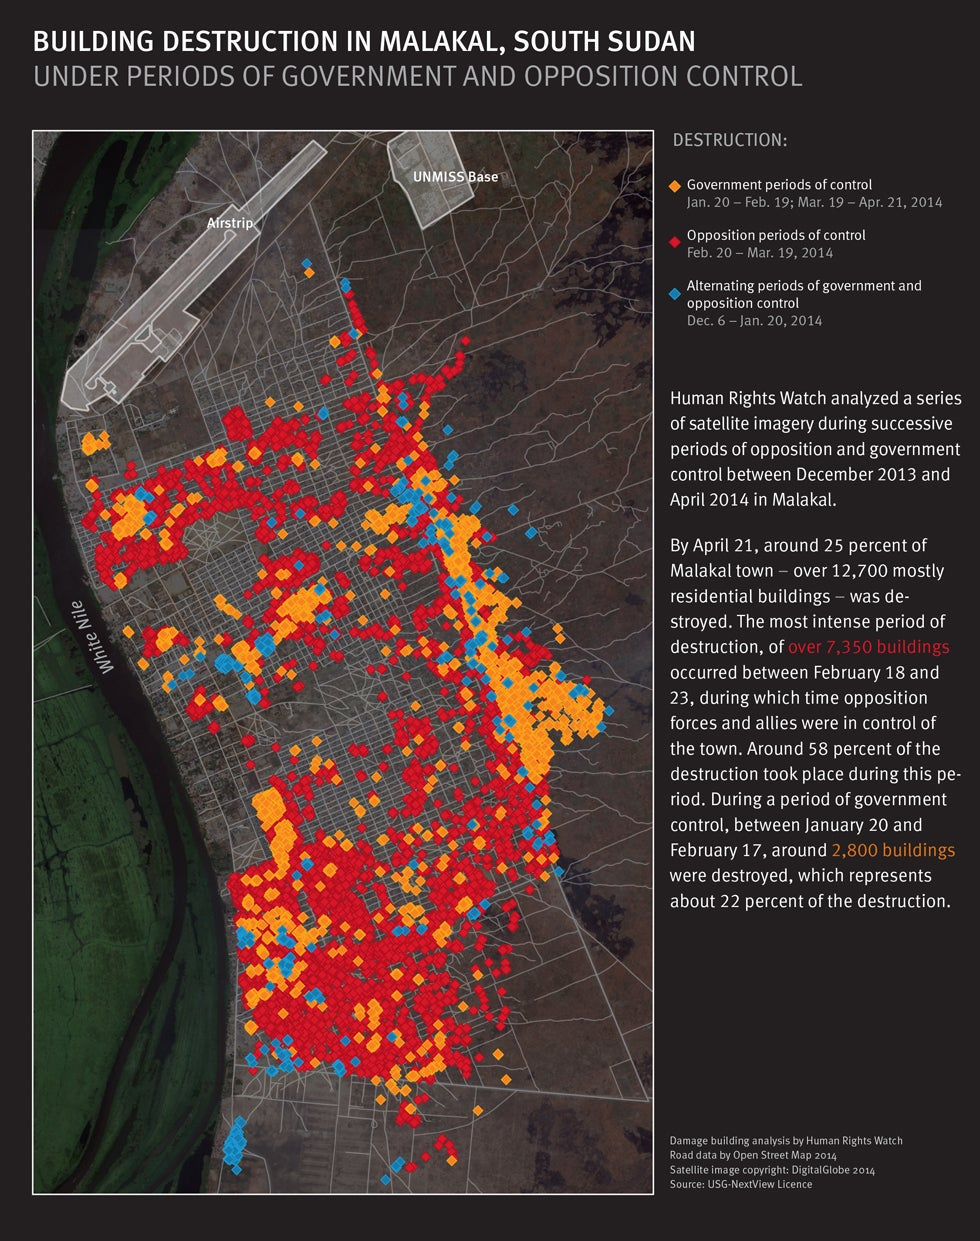 Map of building destruction in Malakal, South Sudan